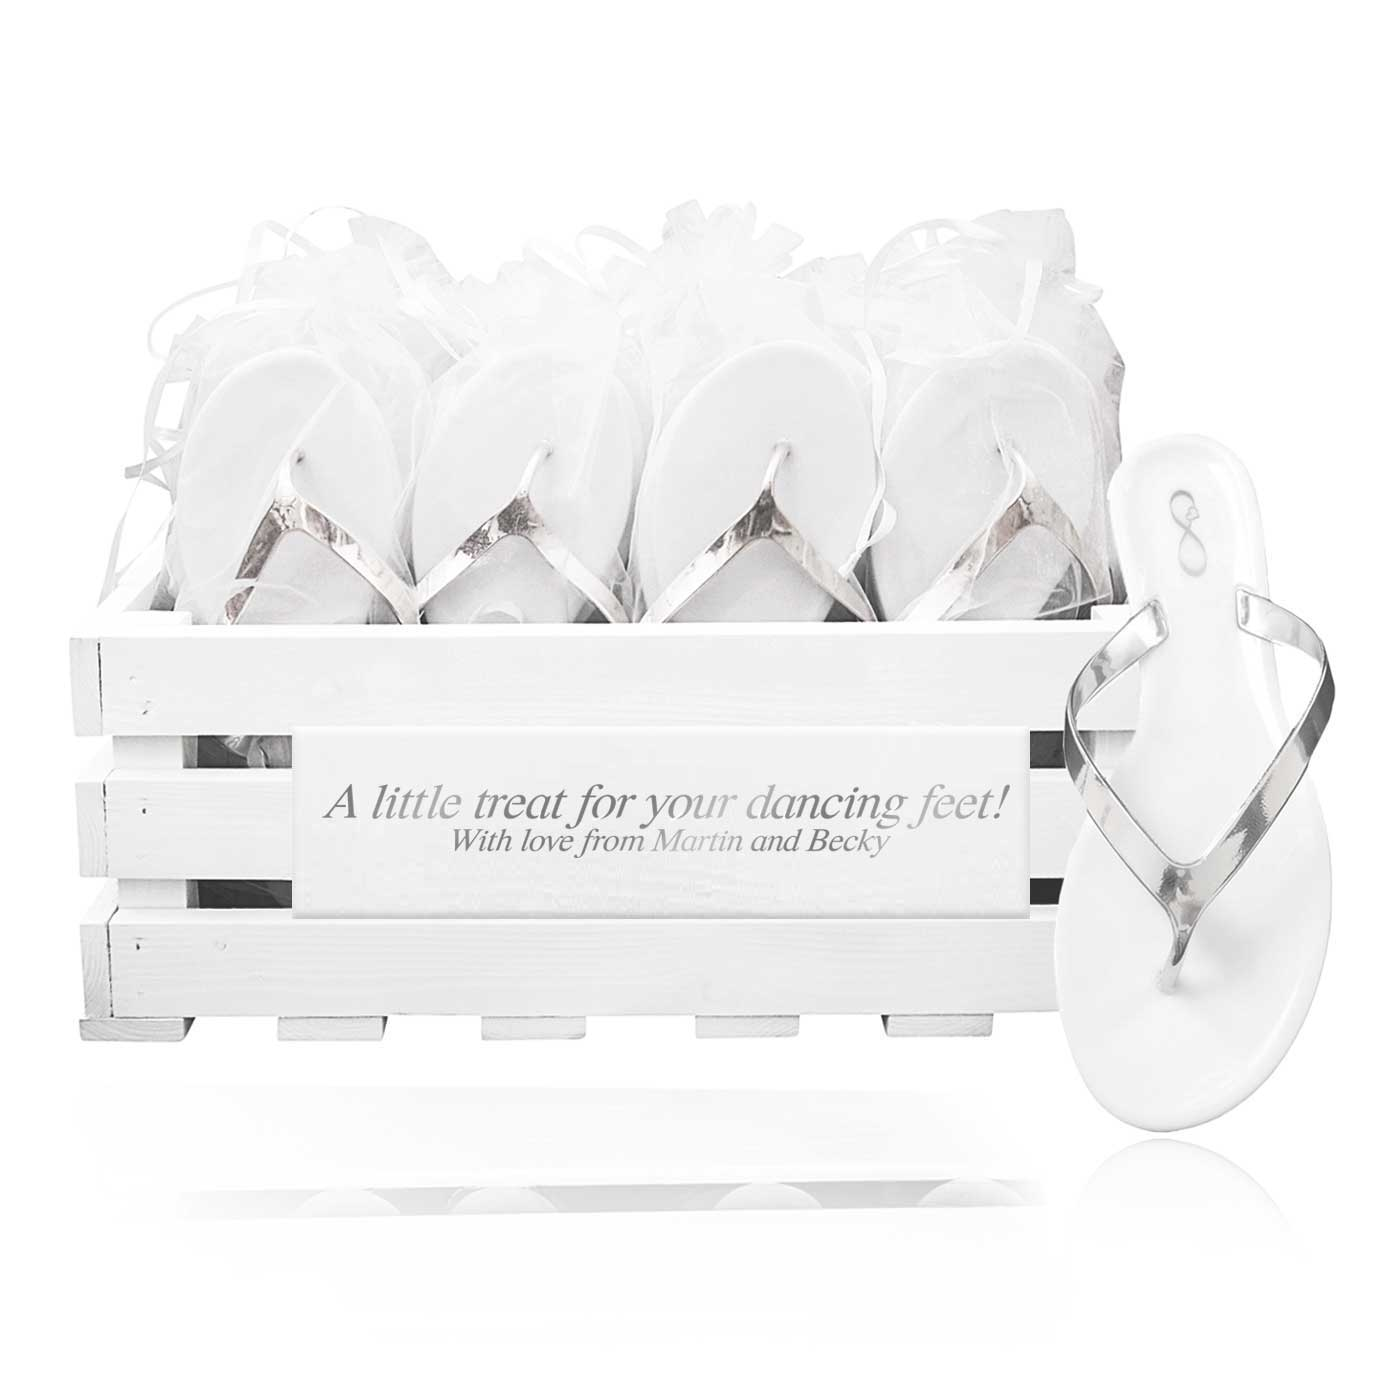 30 pairs of luxury silver jelly flip flops in a personalized crate